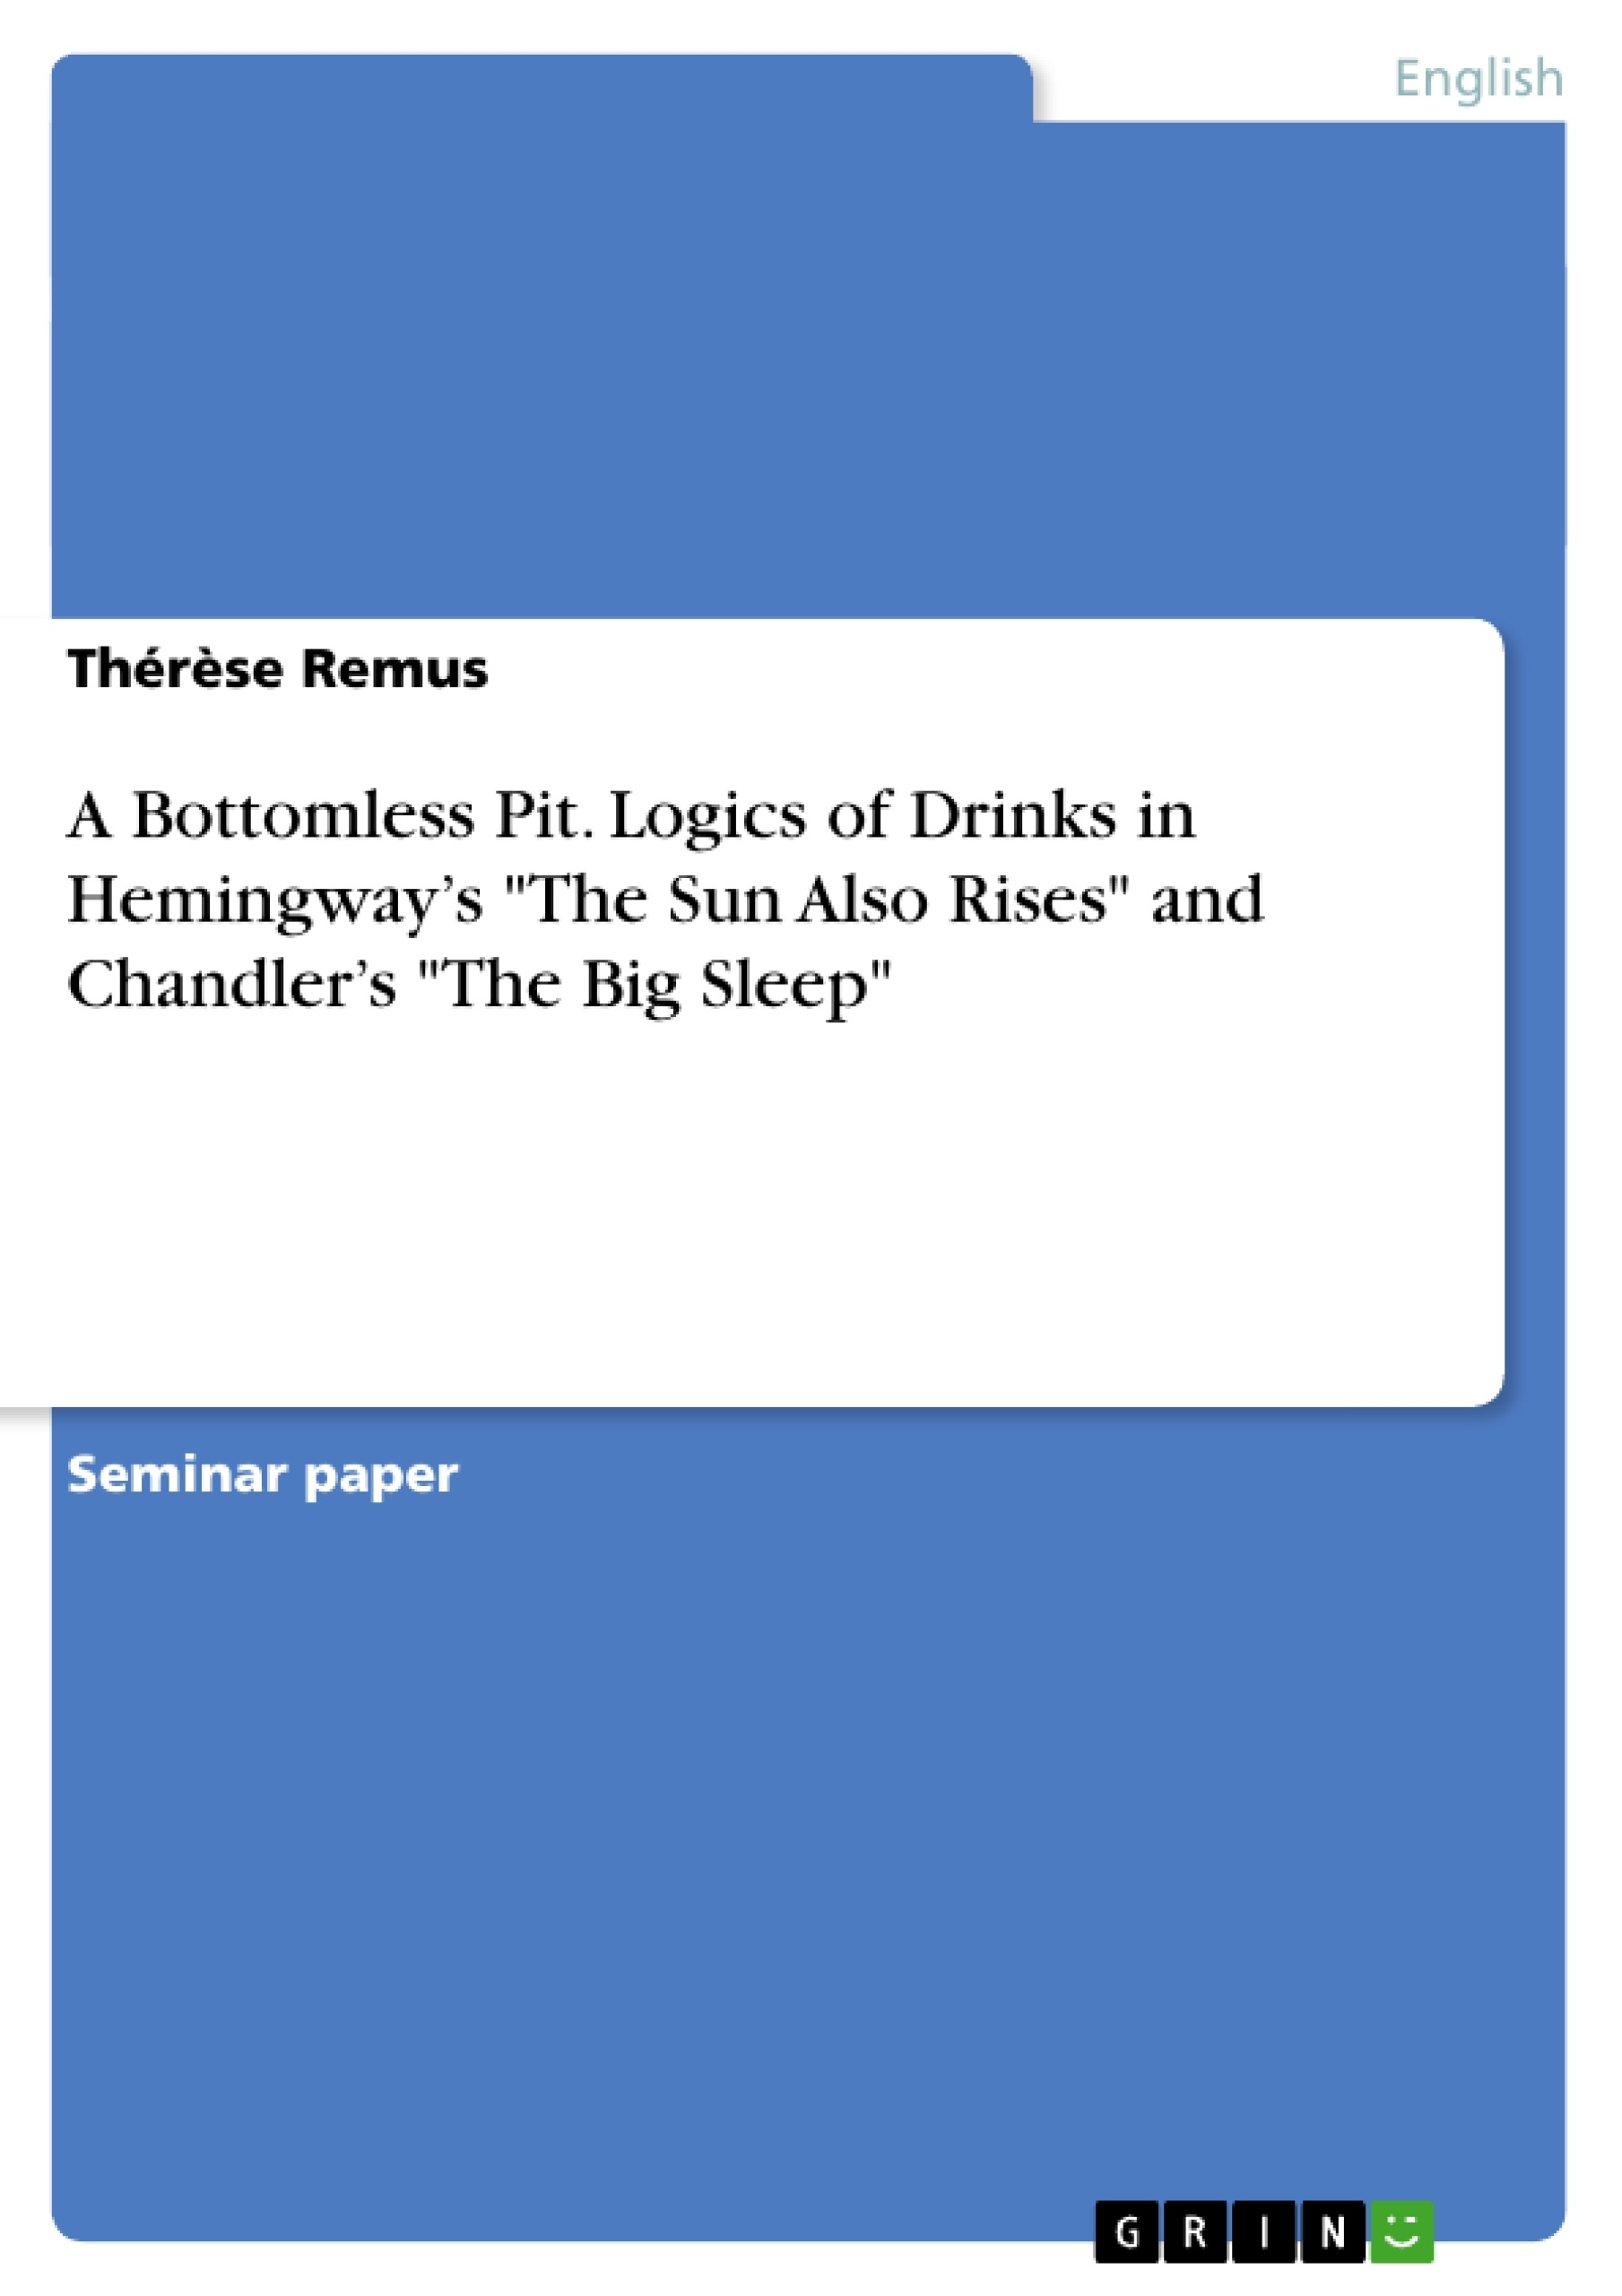 the sun also rises essays a bottomless pit logics of drinks in  a bottomless pit logics of drinks in hemingway s the sun also a bottomless pit logics nothing but the truth essays studymode